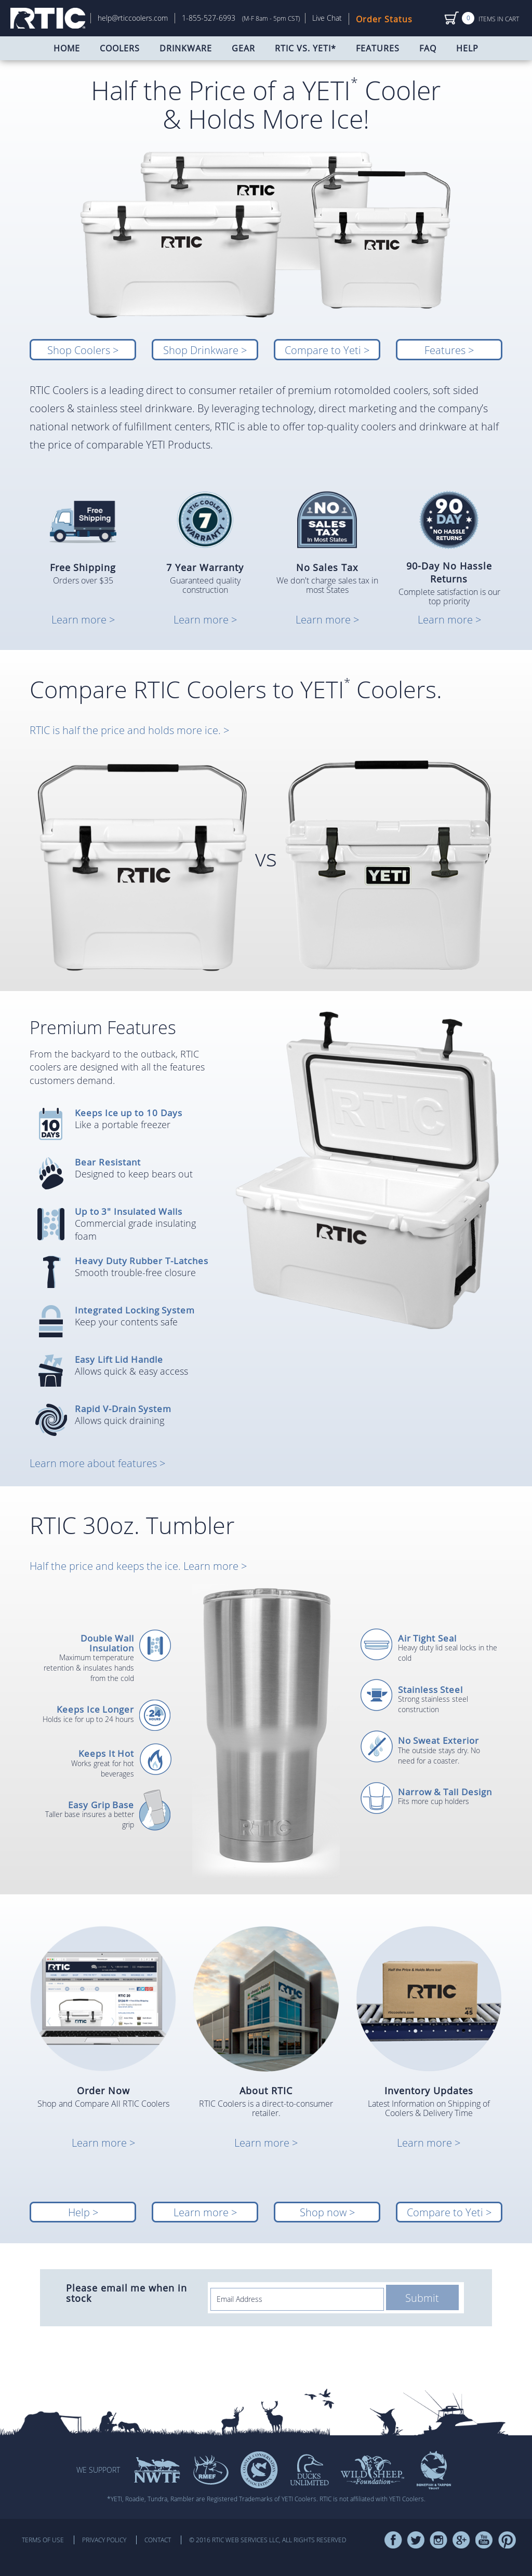 RTIC Coolers Competitors, Revenue and Employees - Owler